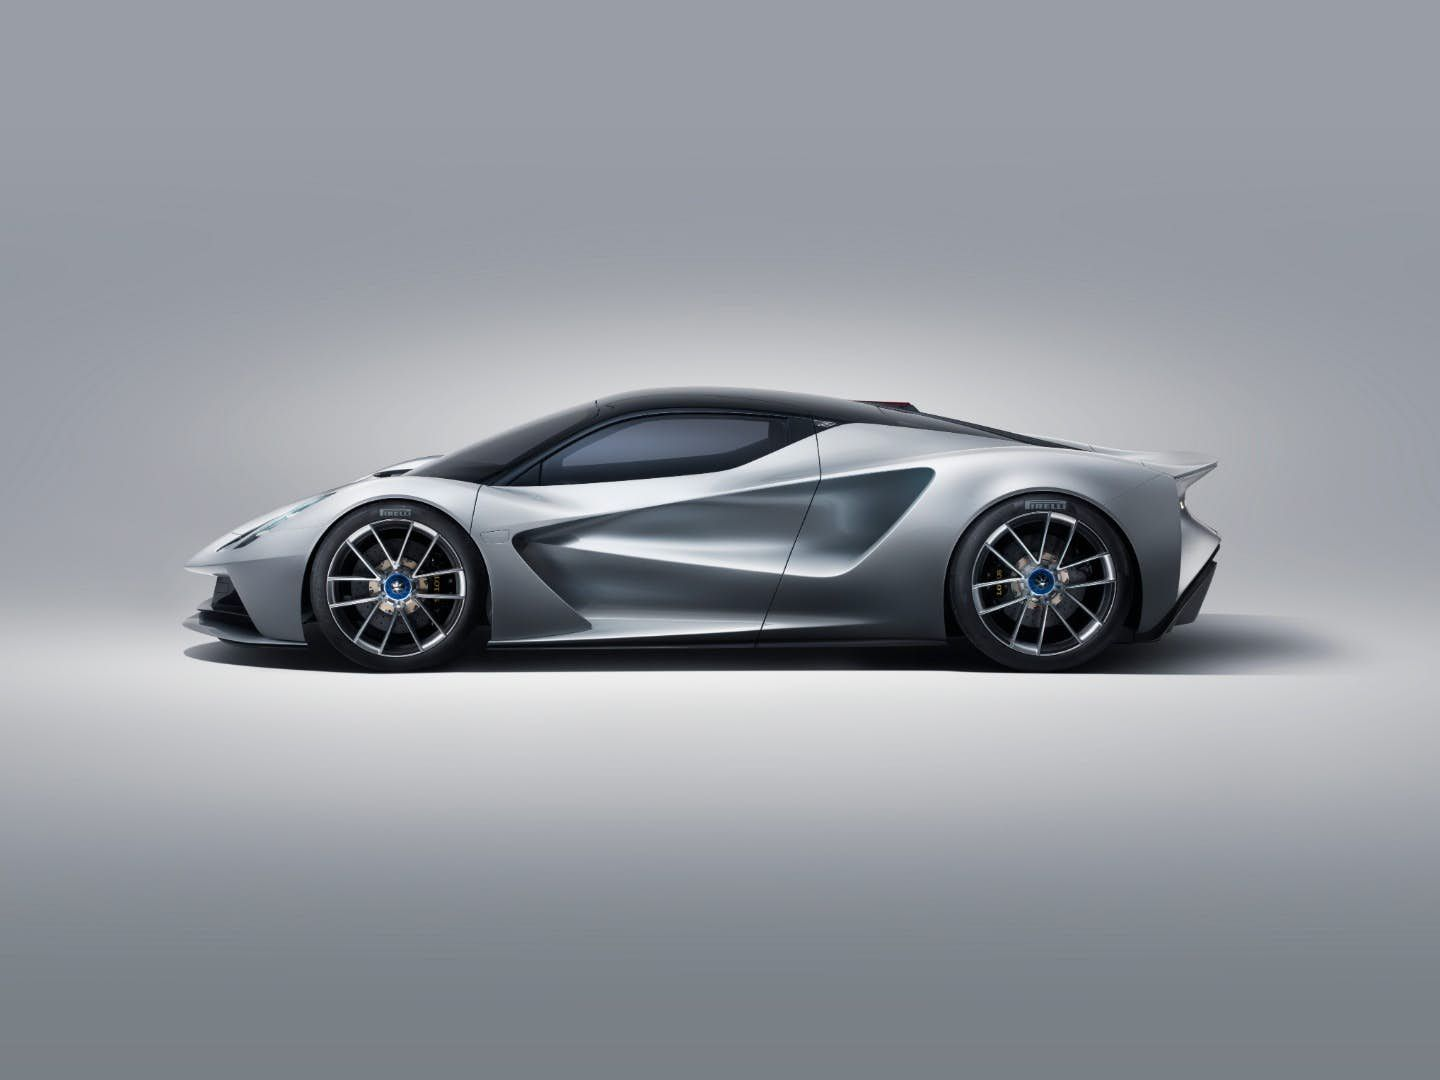 2 000 Horsepower Lotus Evija Becomes The World S Most Powerful Production Car Lotus Car Super Cars Sports Car Brands